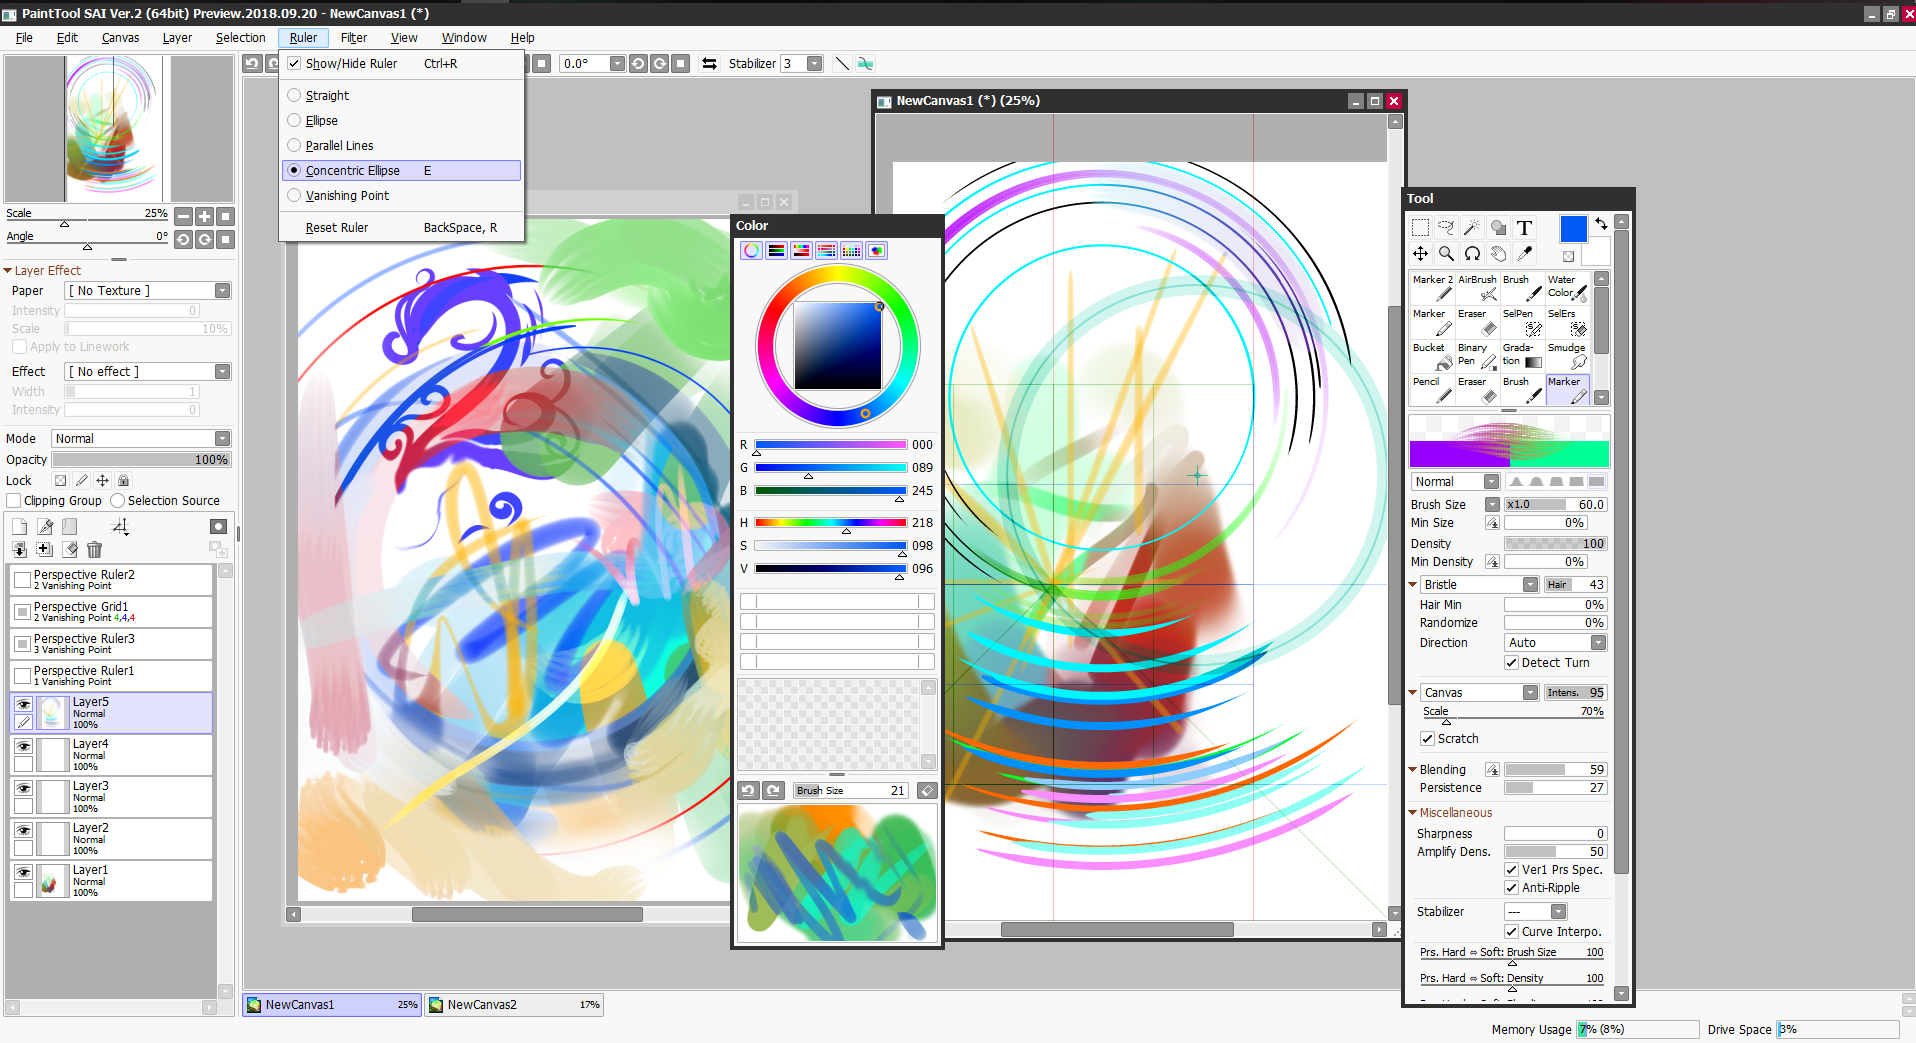 paint tool sai free download full version safe